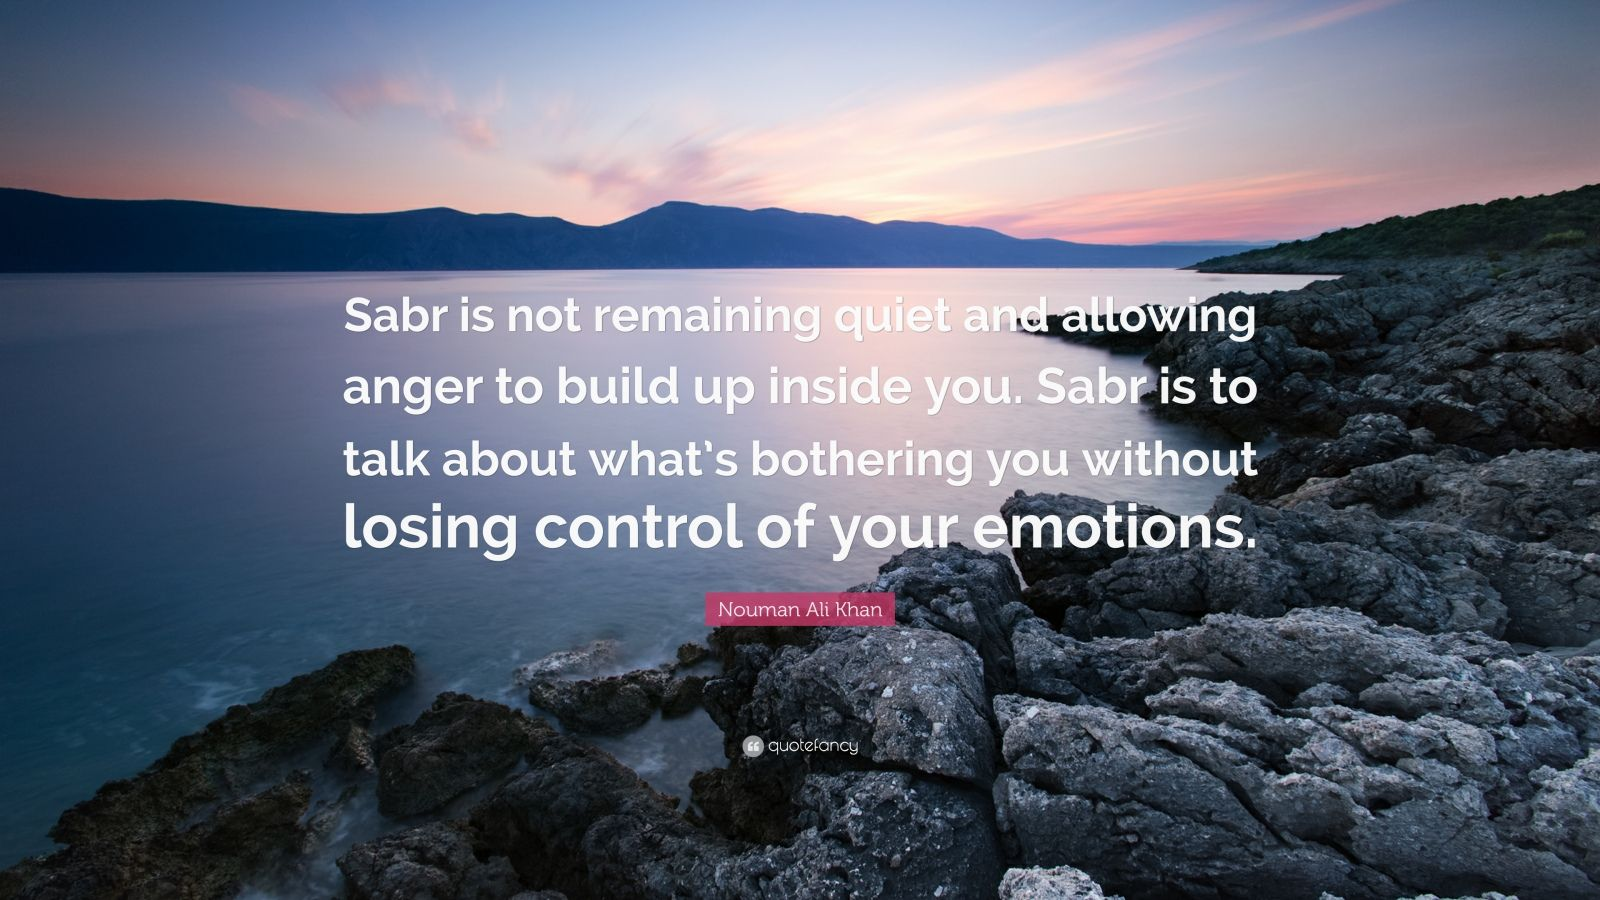 """Nouman Ali Khan Quote: """"Sabr is not remaining quiet and allowing anger to build up inside you. Sabr is to talk about what's bothering you without losing control of your emotions."""""""